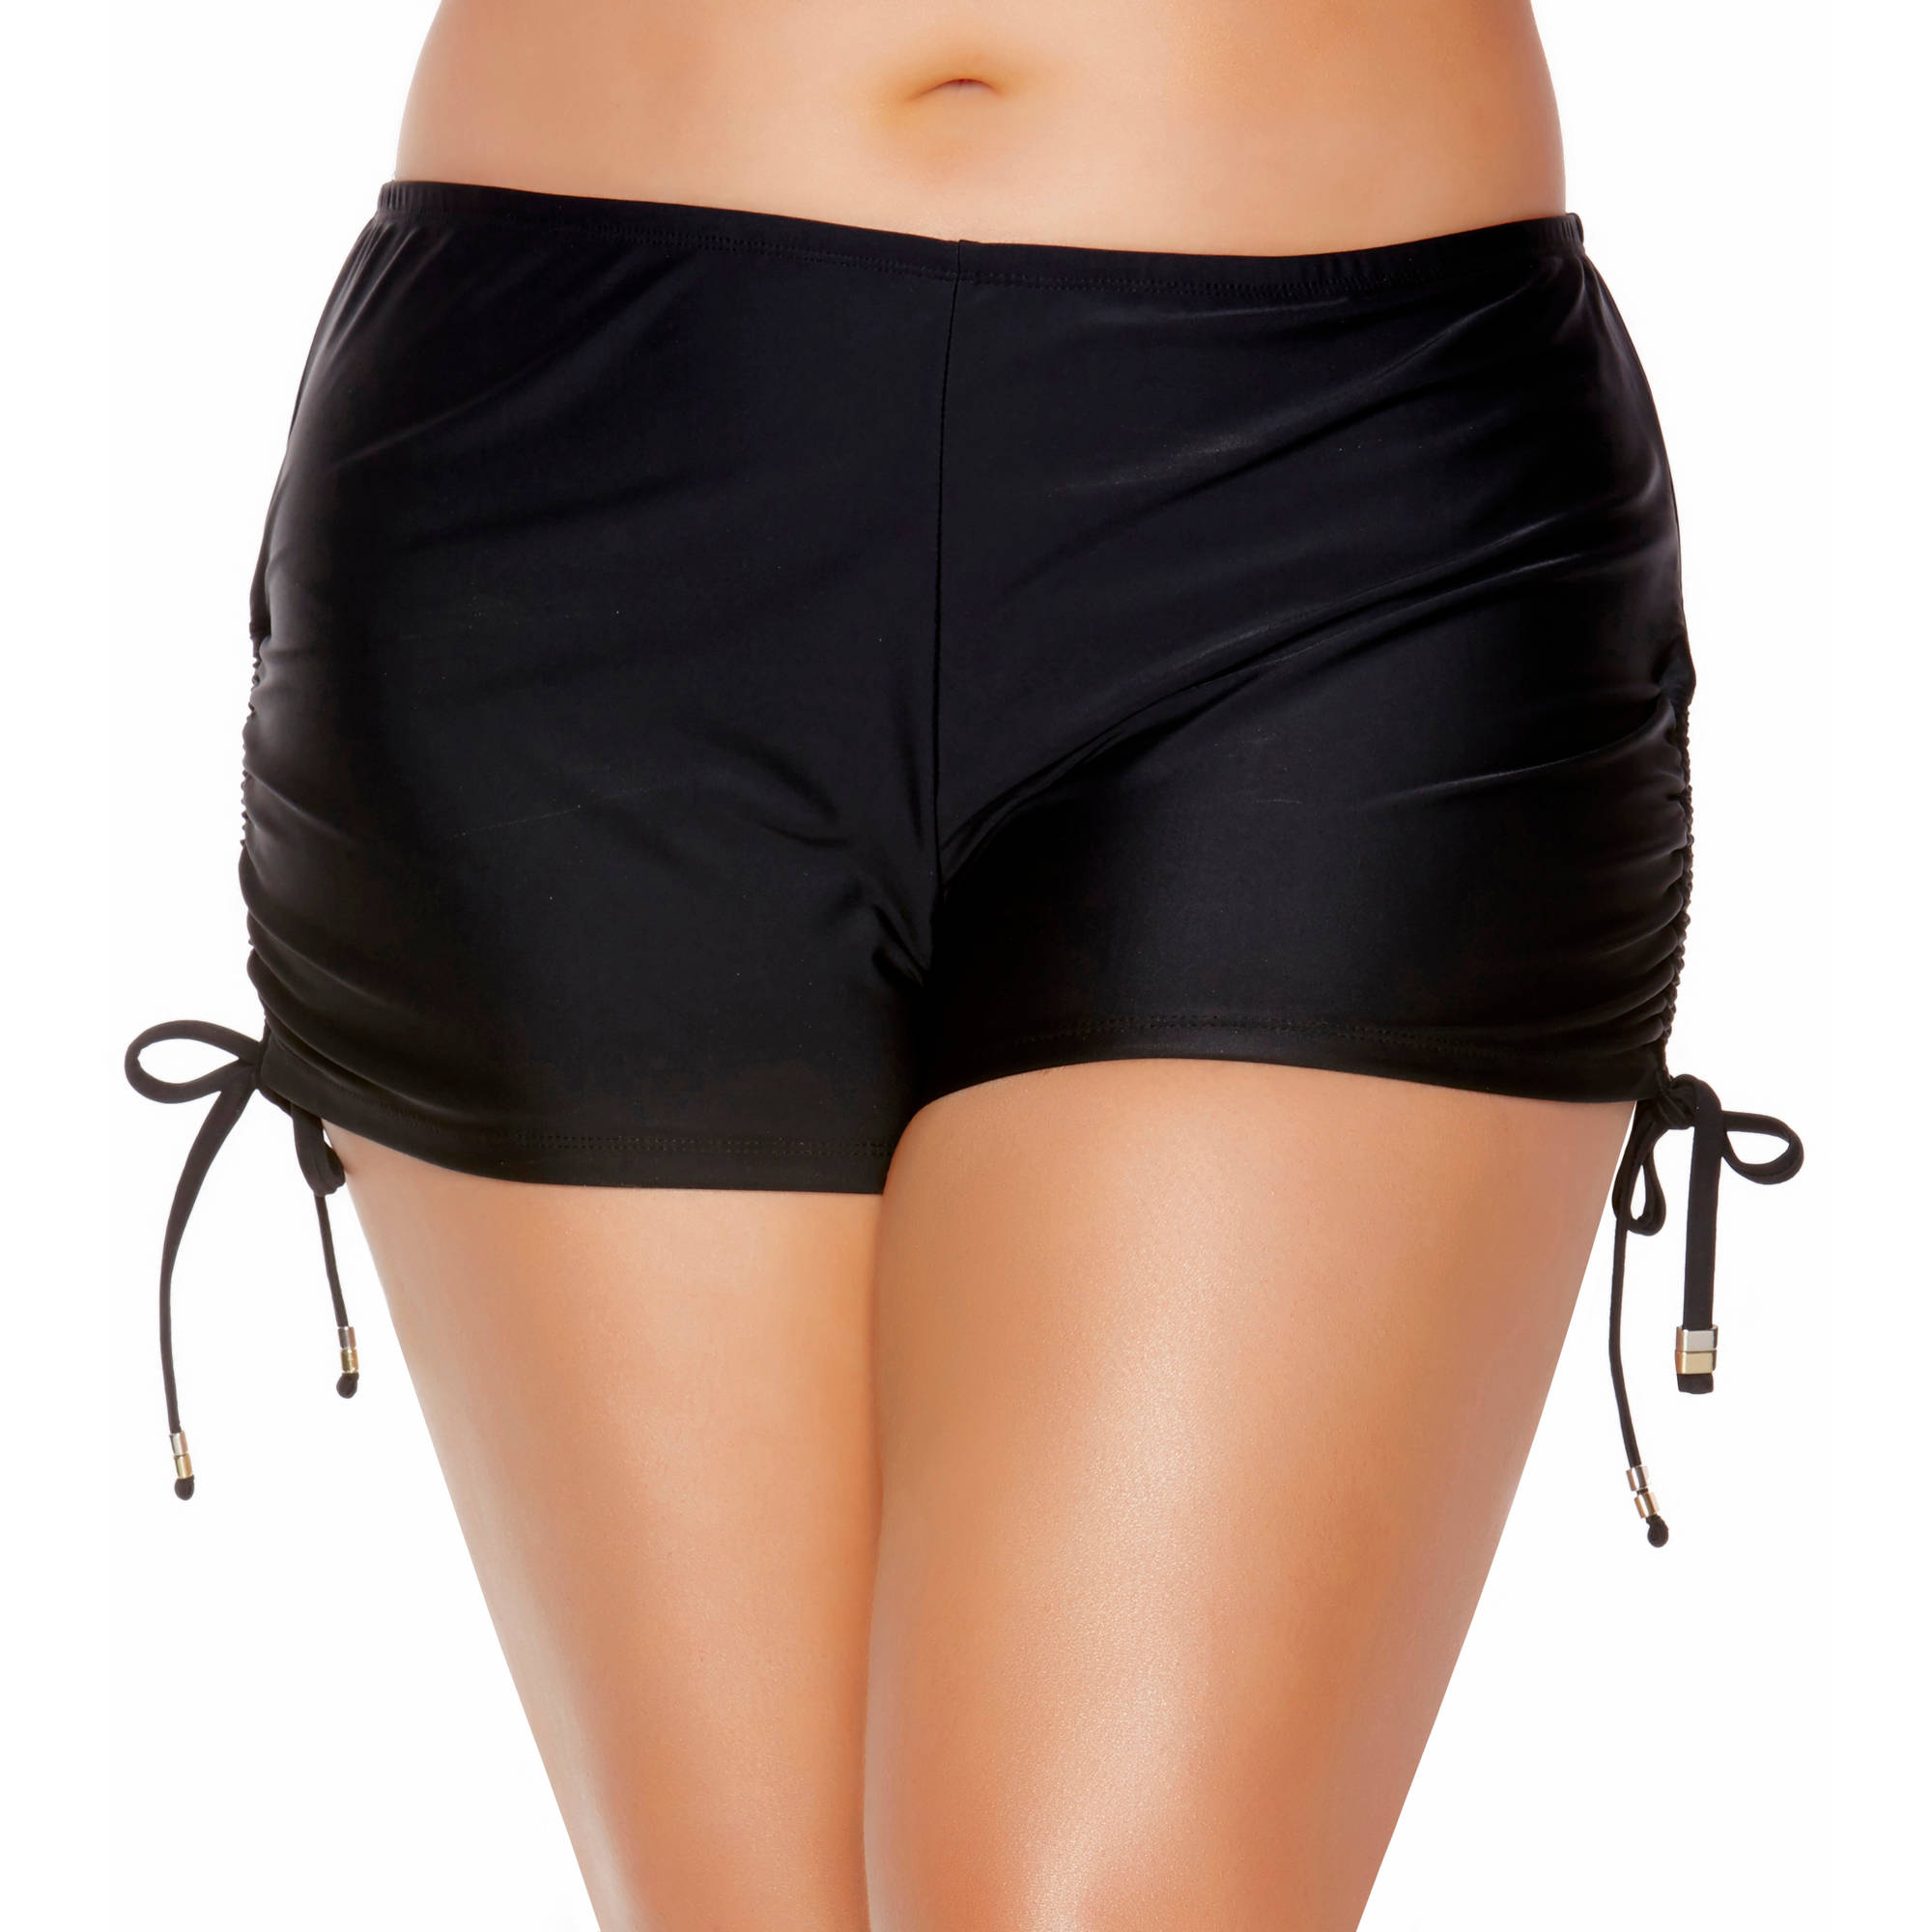 Collections by Catalina Womens Plus-Size Full Coverage Boyshorts With Ties